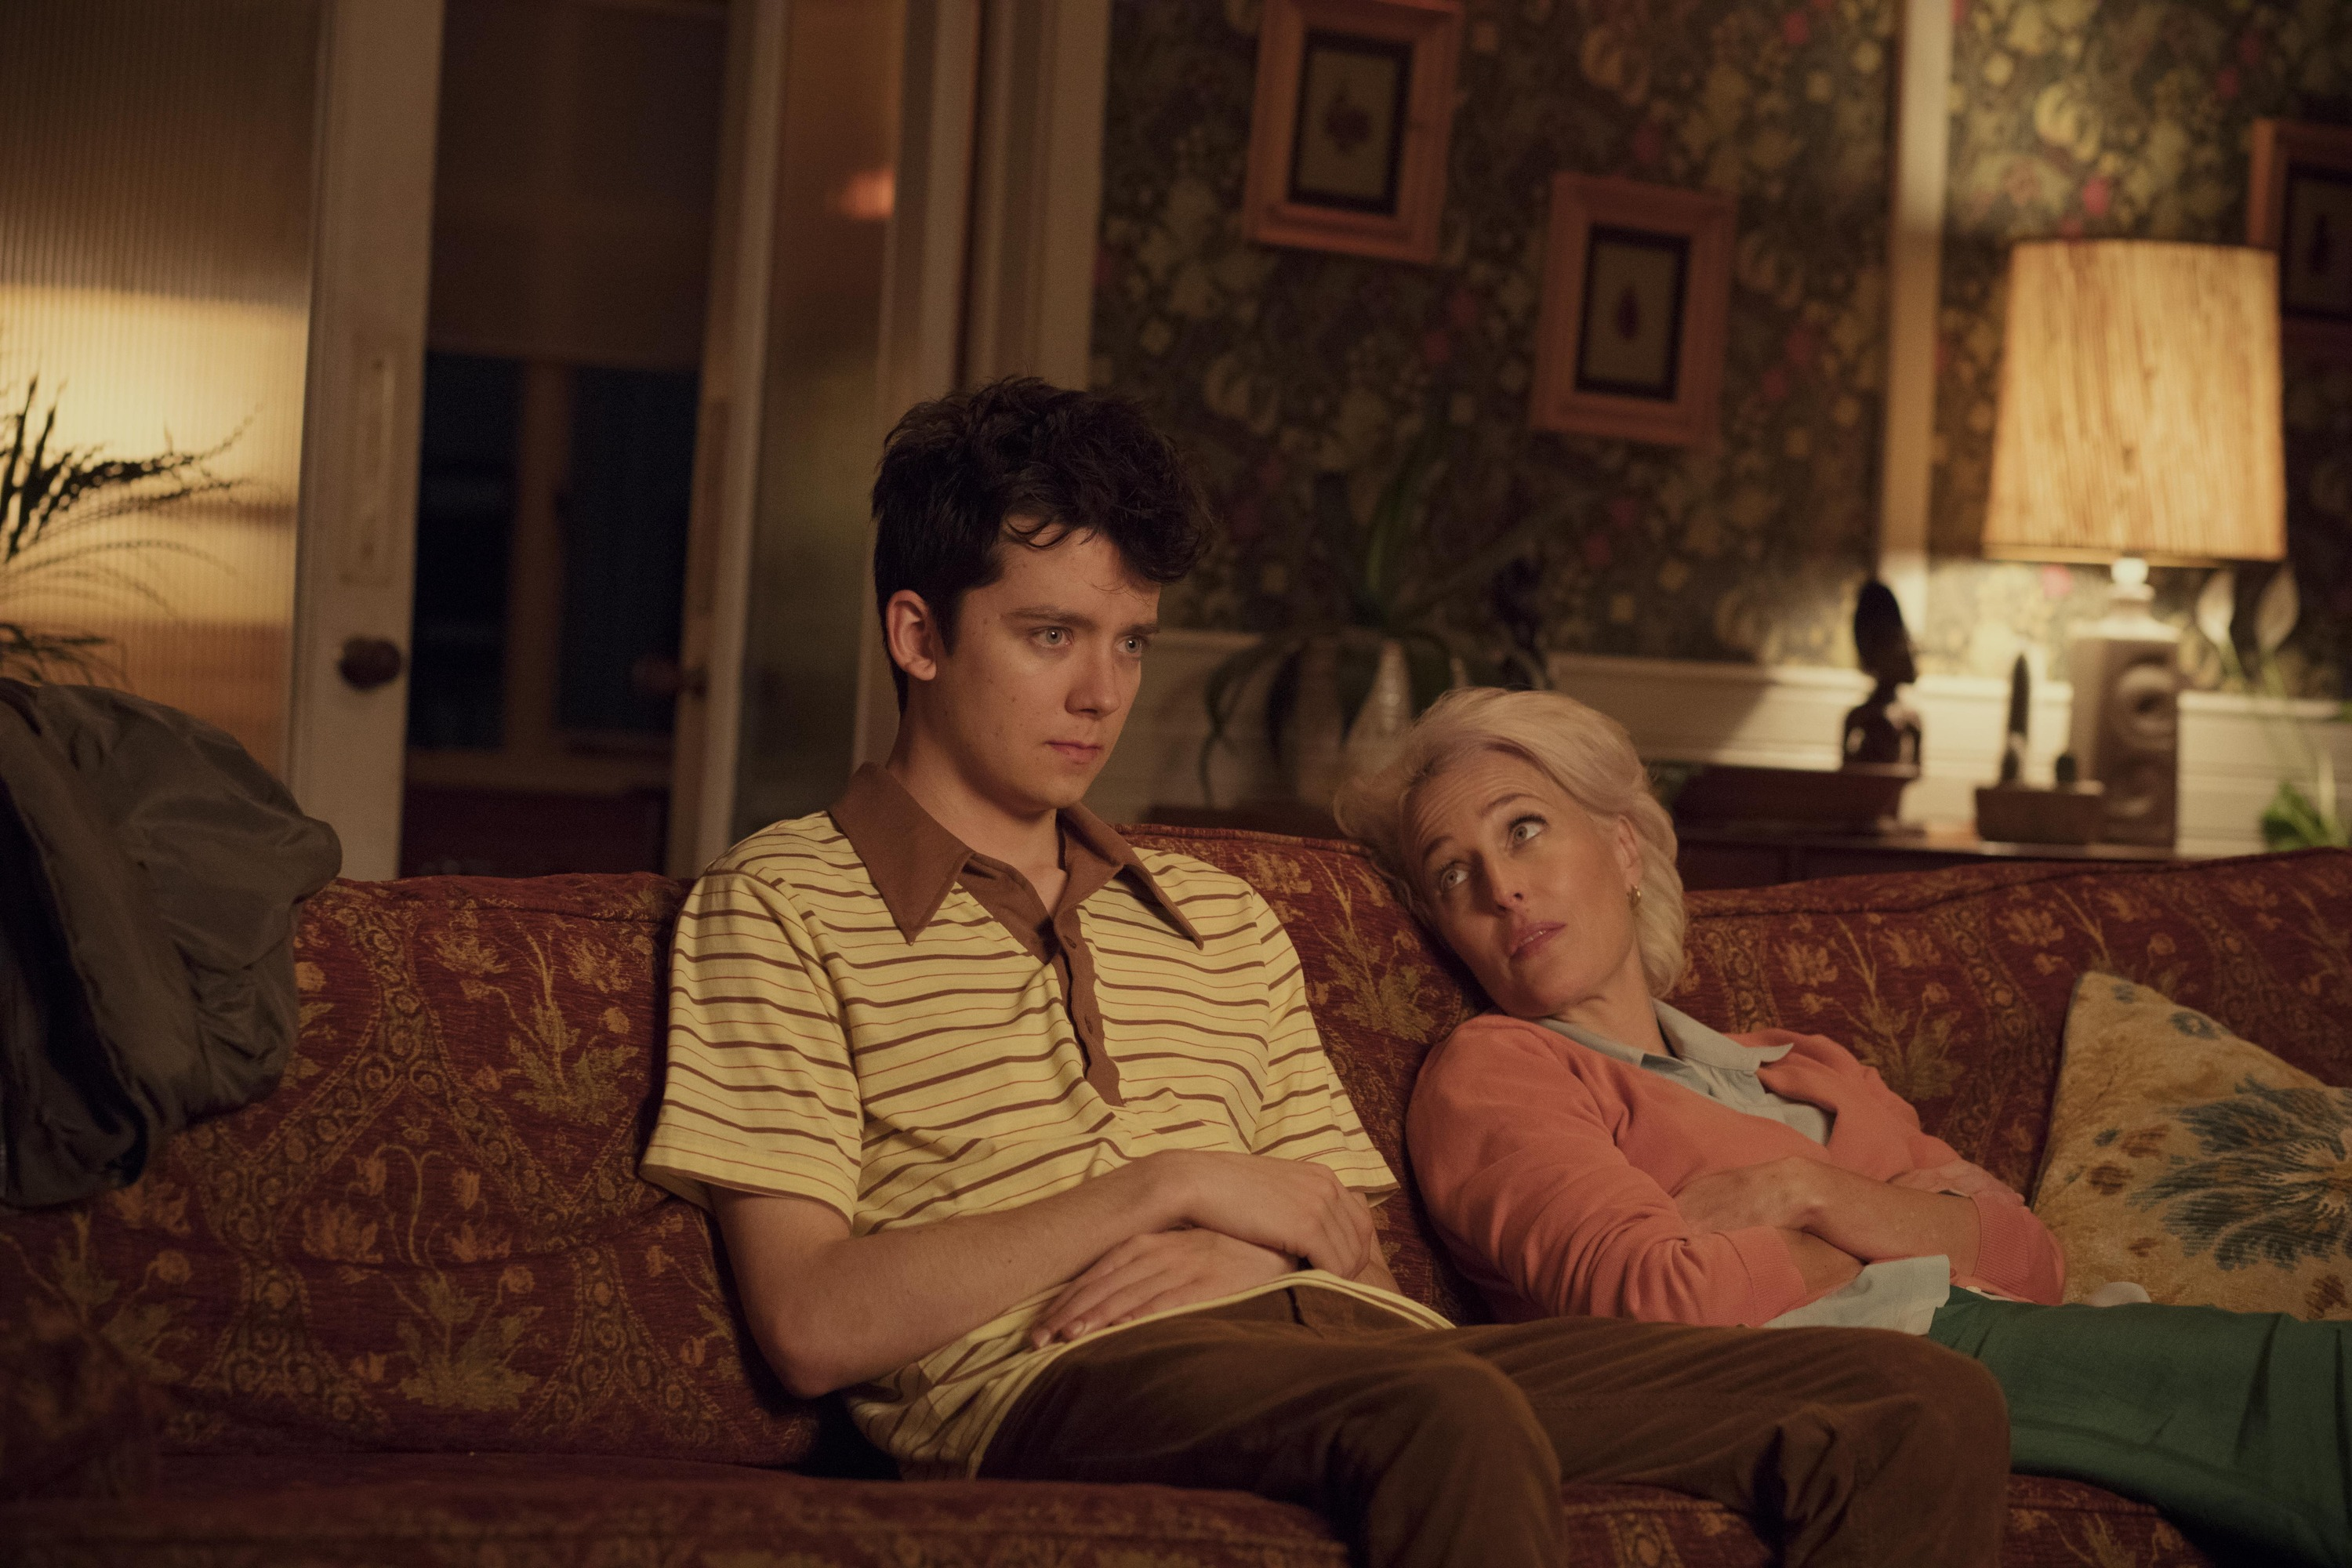 A still from the Netflix show Sex Education starring Asa Butterfield and Gillian Anderson